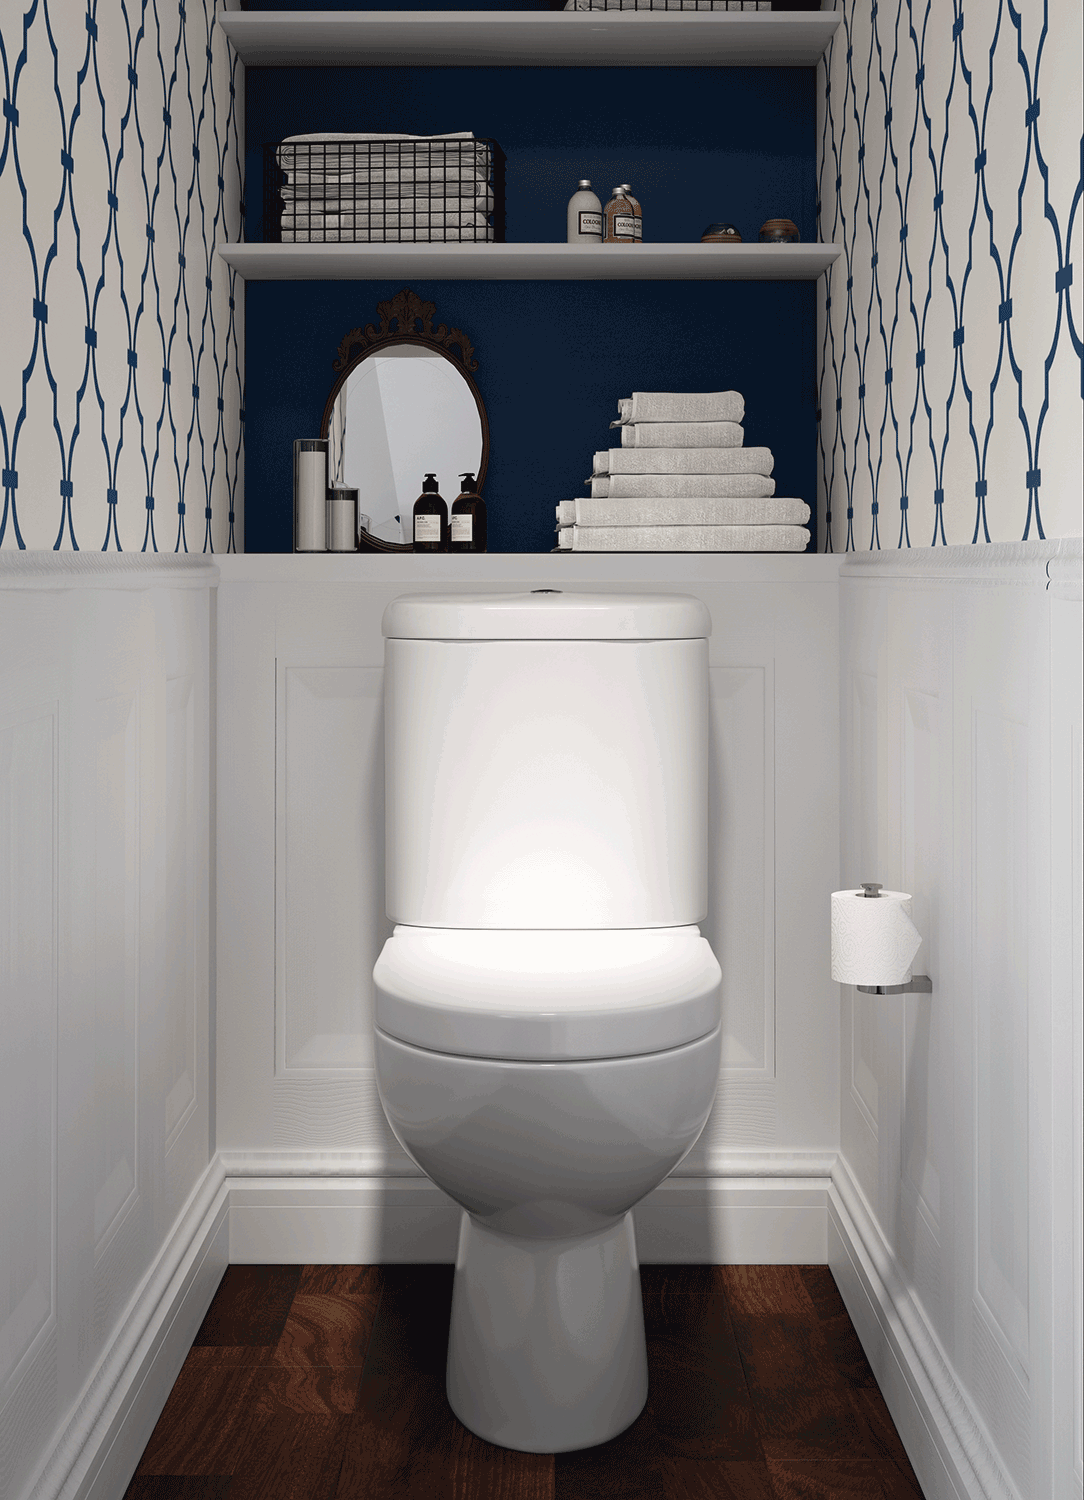 Toilet Room Designs: BATHLINE Bathroom Cloakroom Design